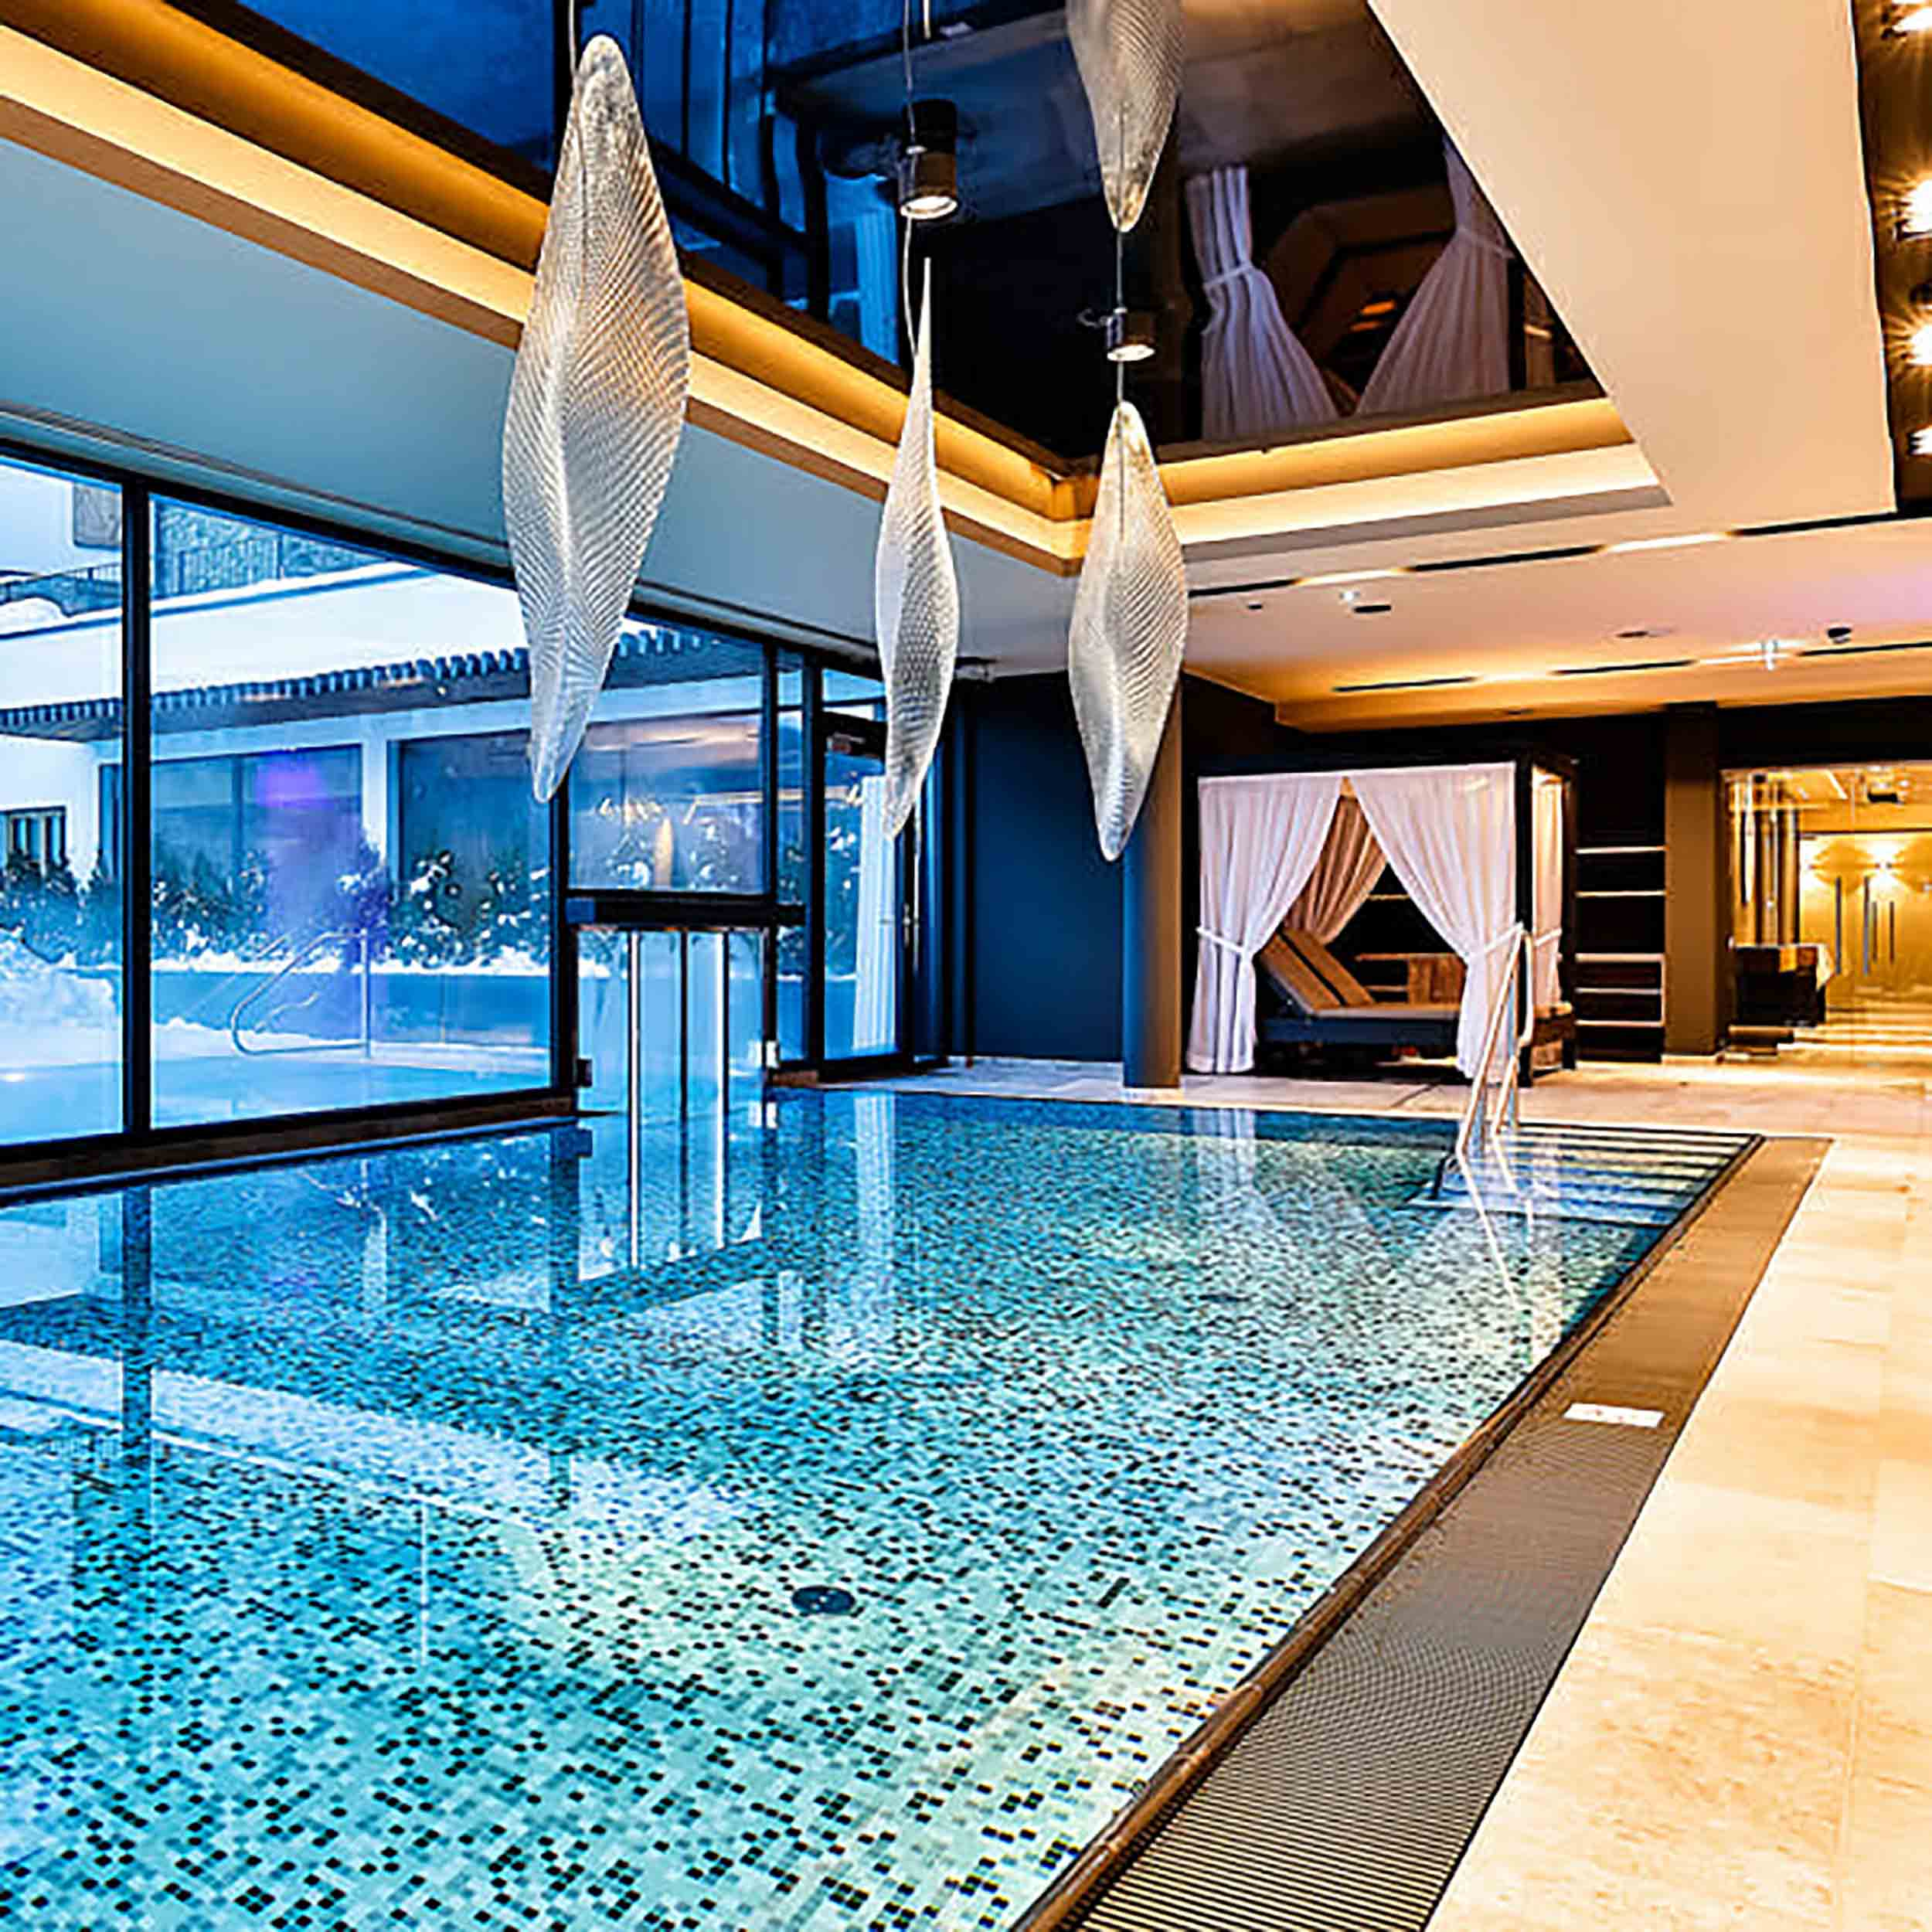 Interesting-lights-above-the-indoor-pool